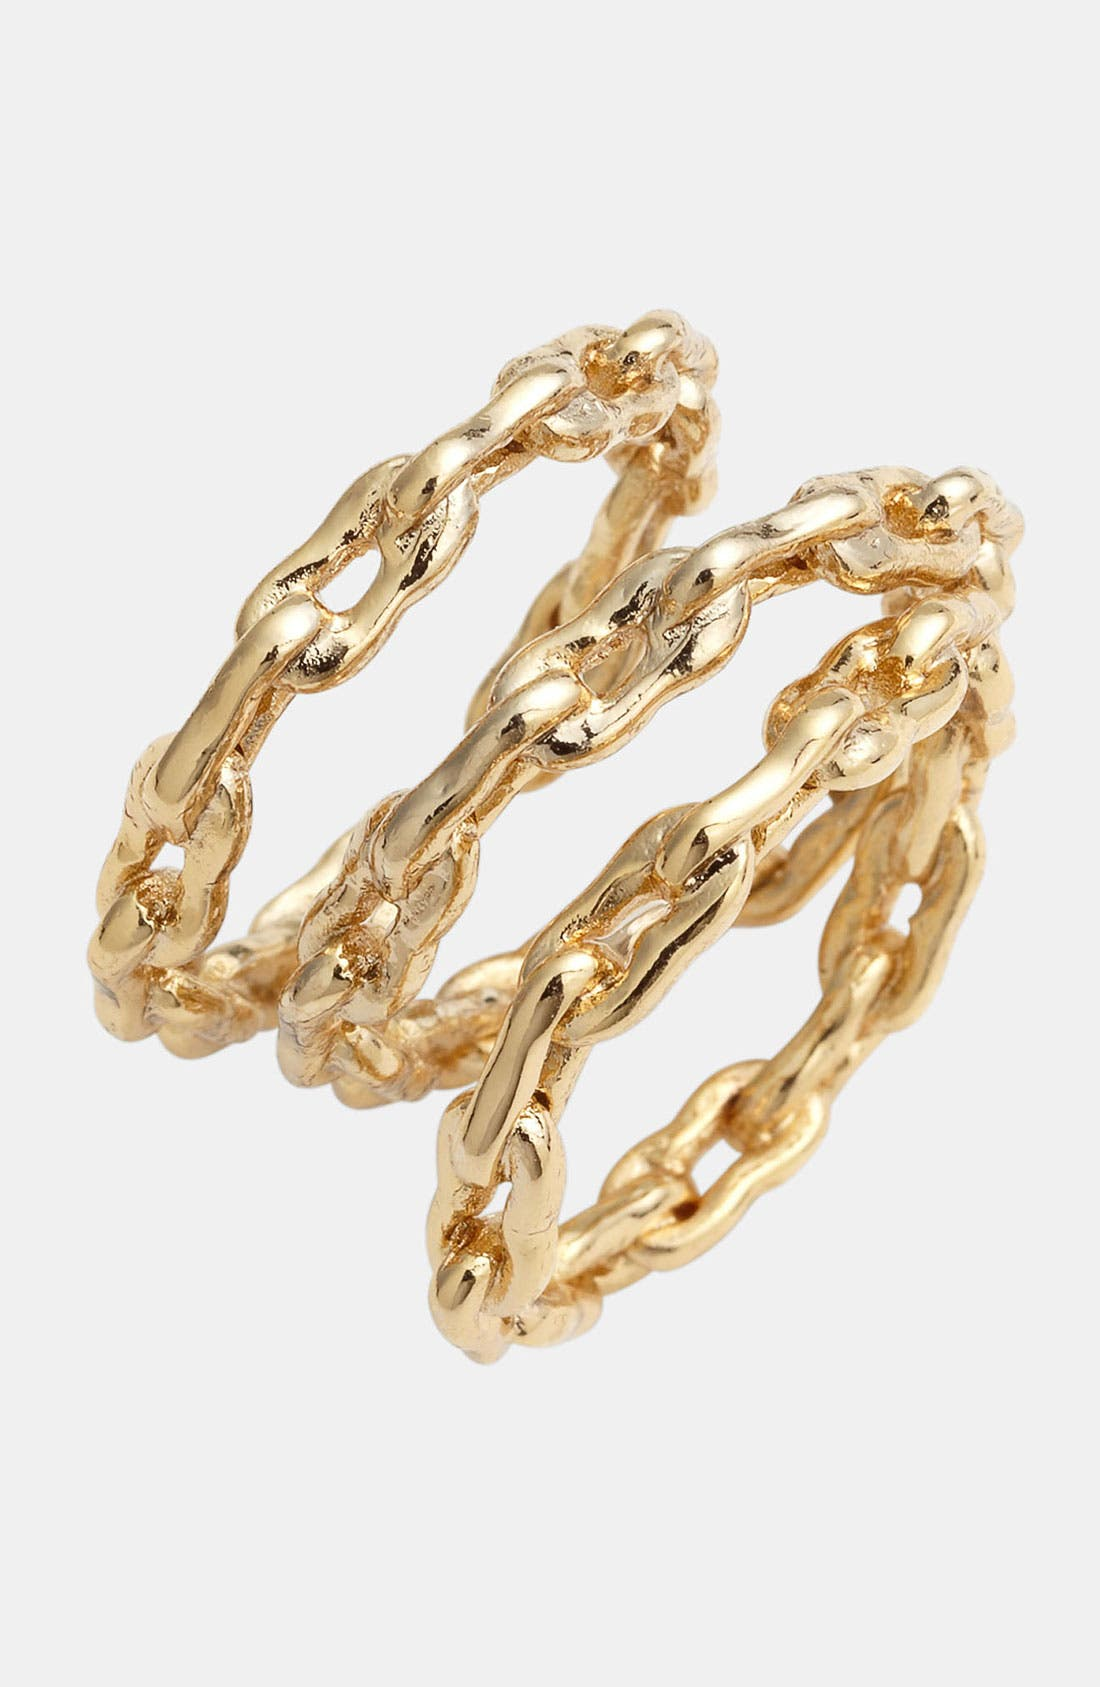 Alternate Image 1 Selected - Kelly Wearstler Bent Link Rings (Set of 3)